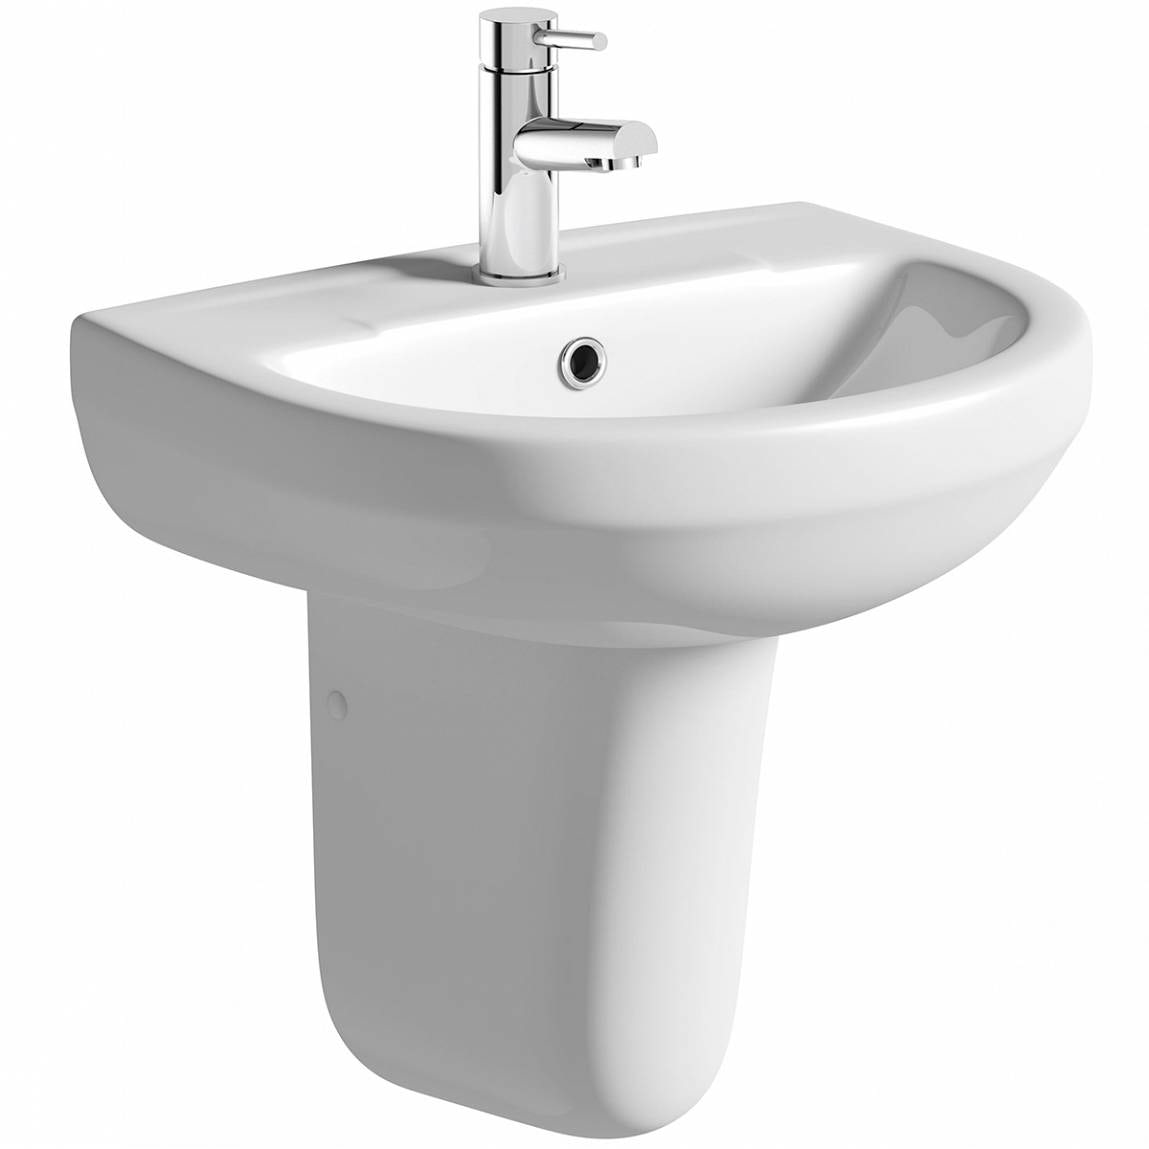 Orchard Eden 1 tap hole semi pedestal basin 550mm